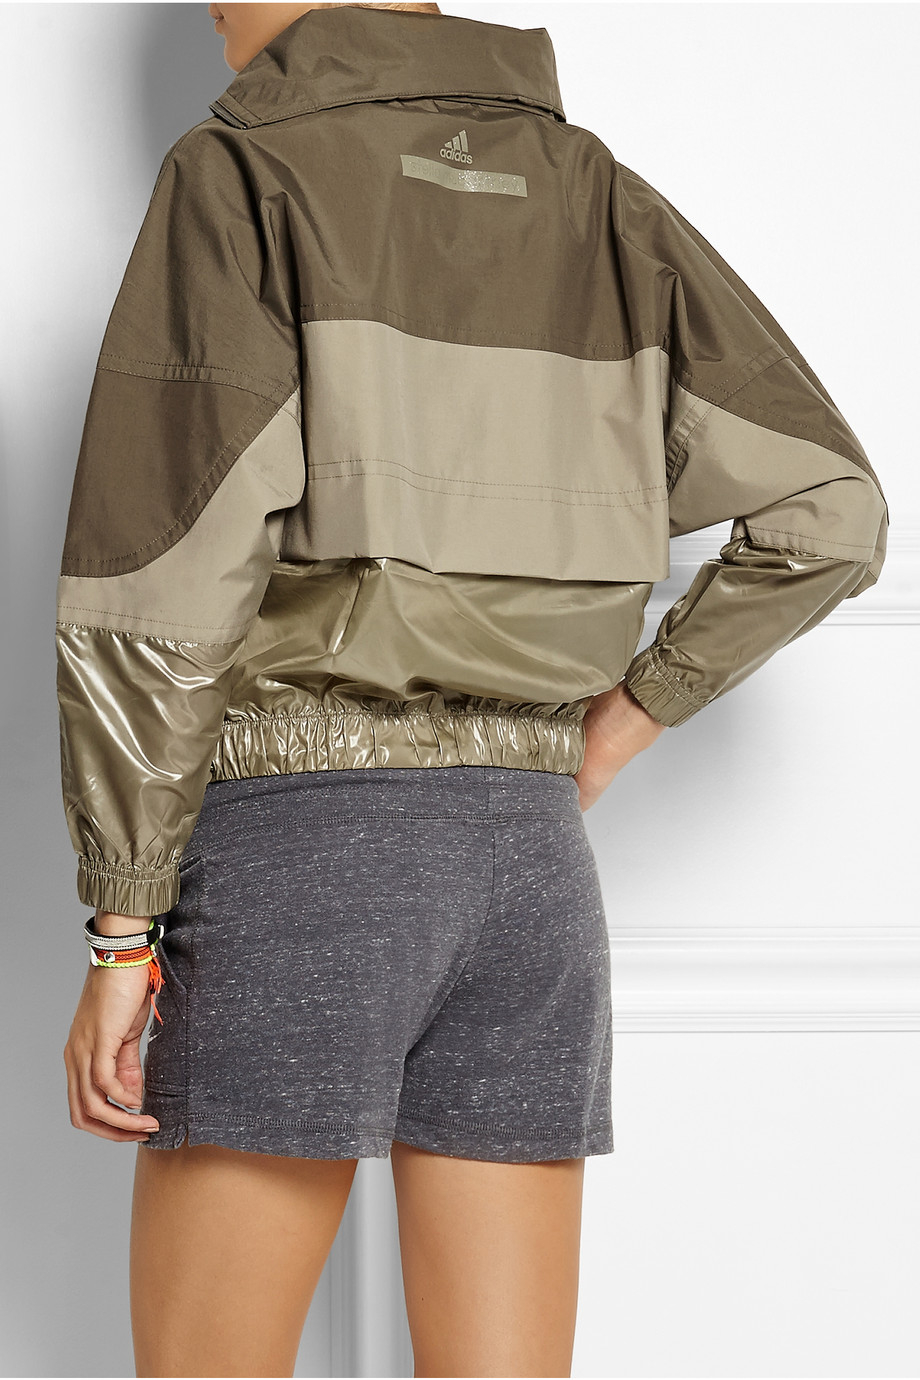 Adidas By Stella McCartney Stella Sport Windbreaker Jacket Run Gym Sporty